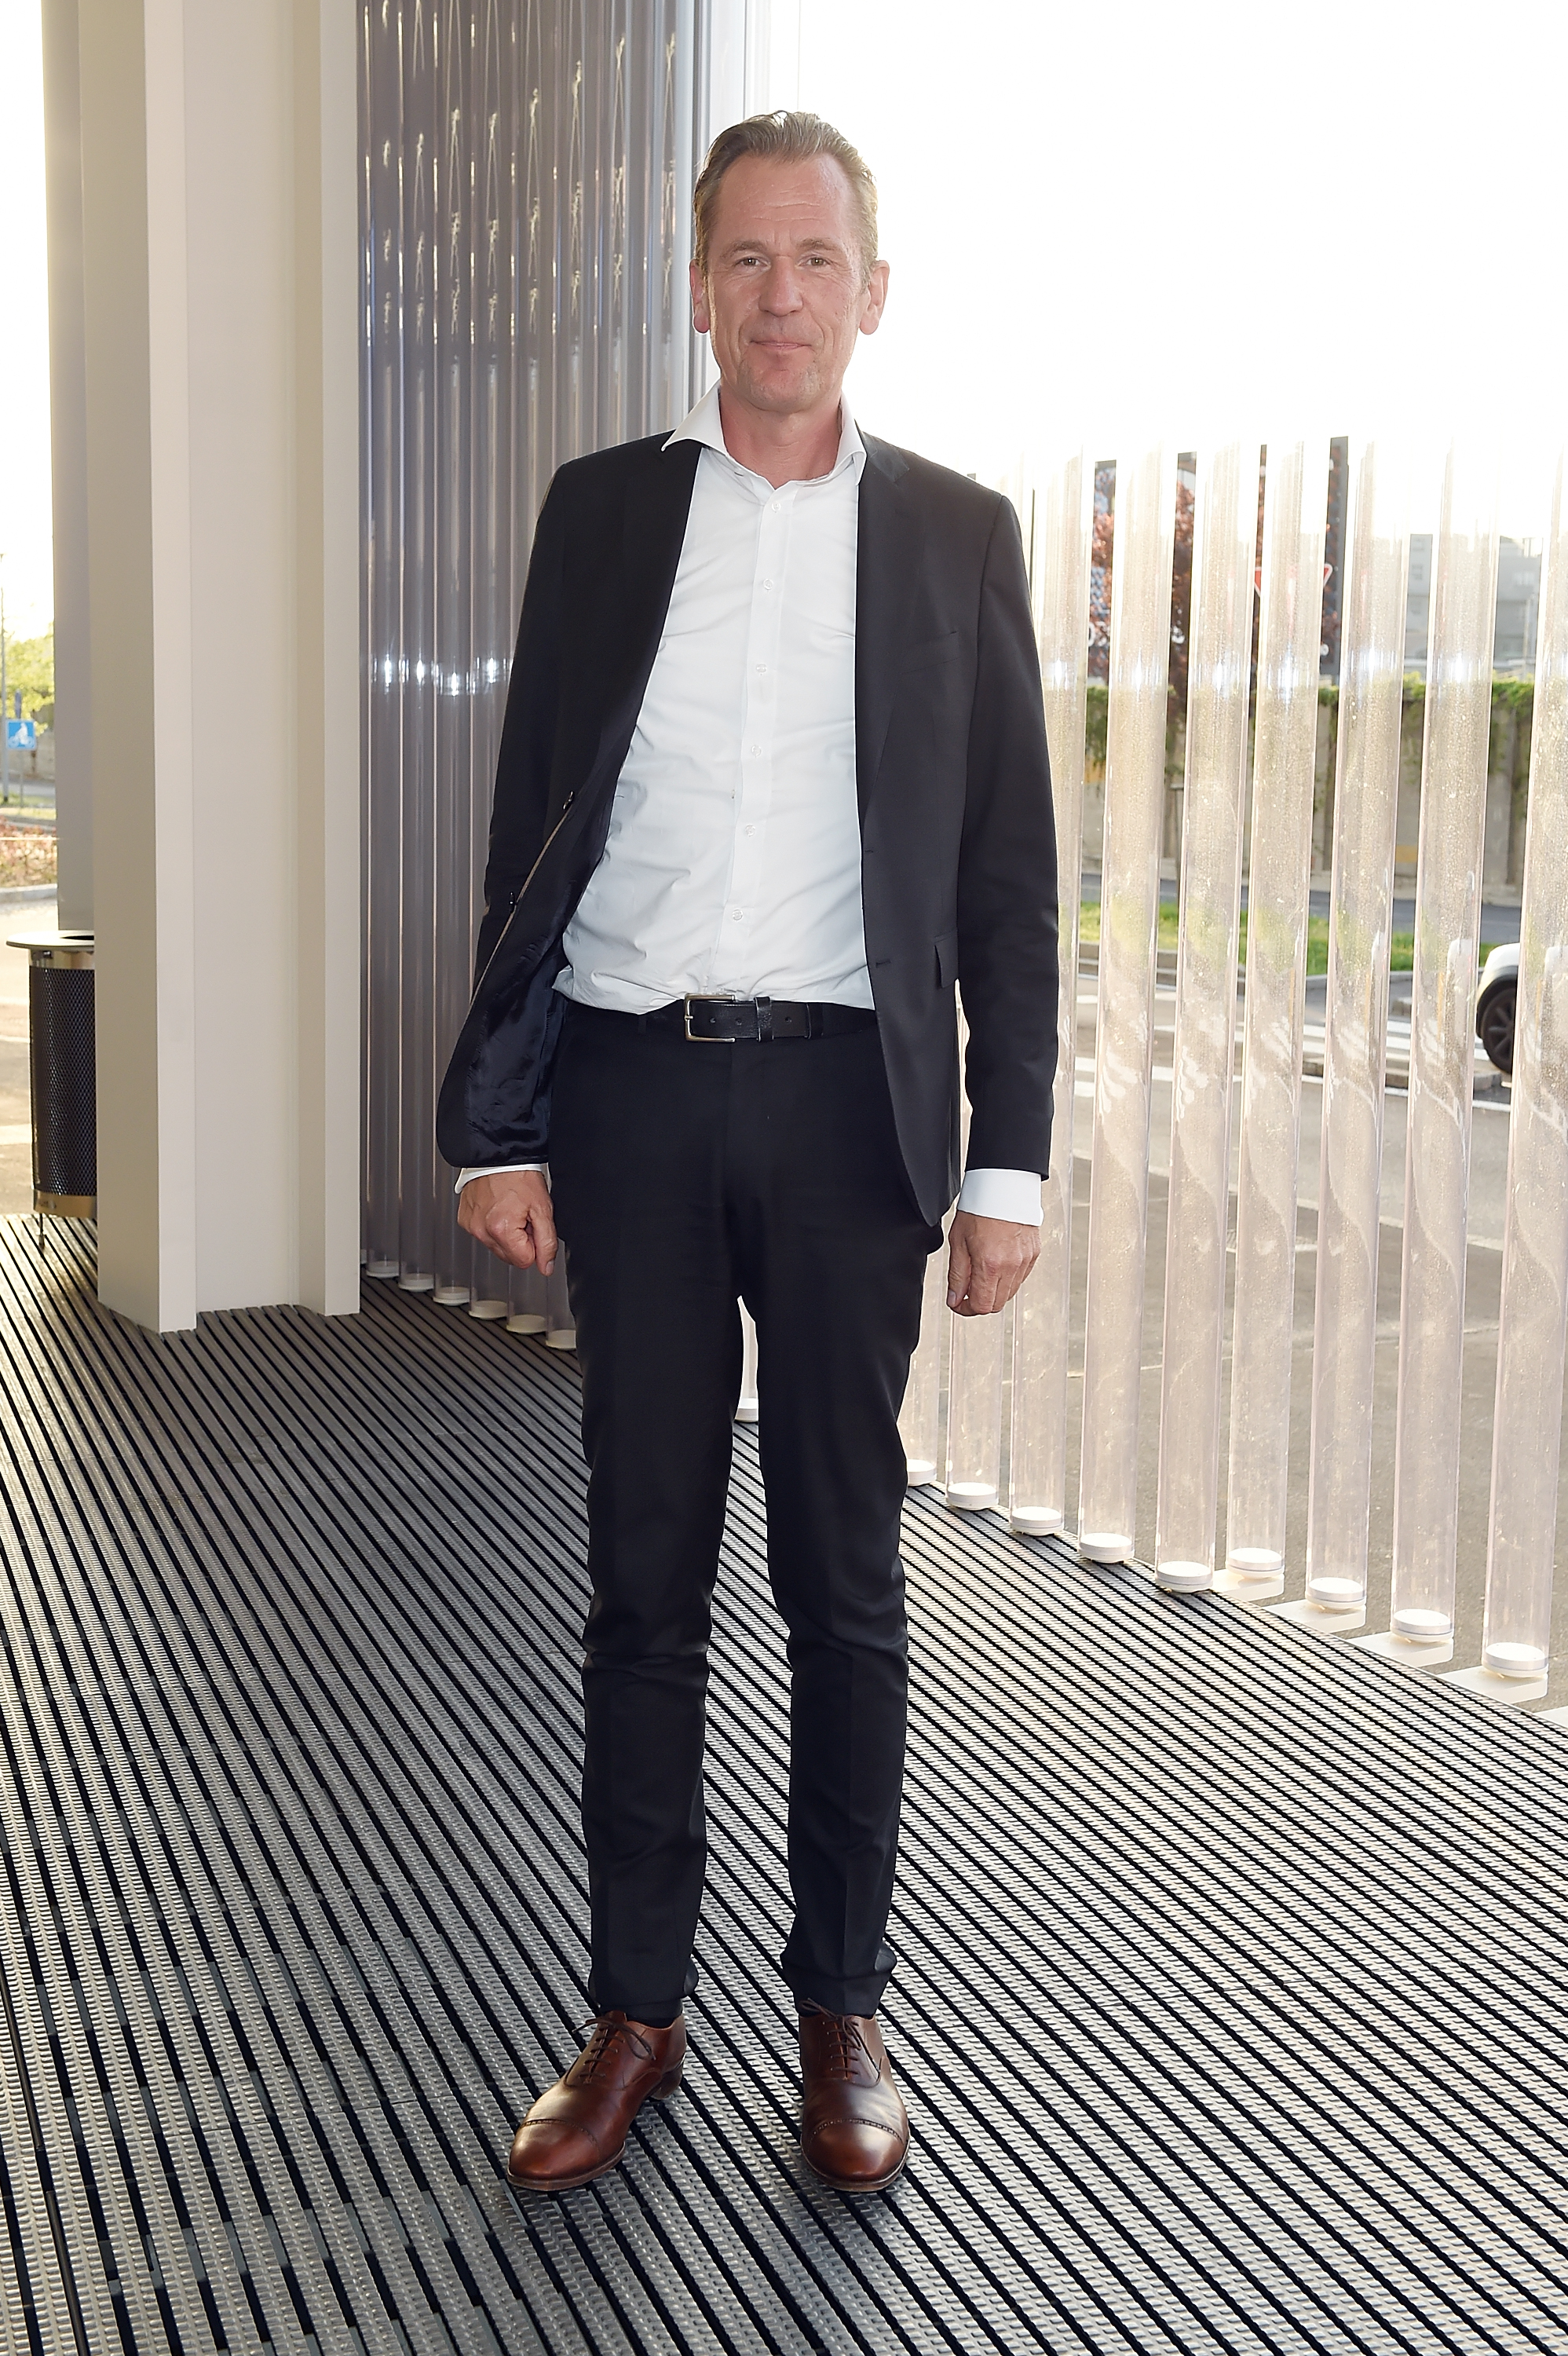 Mathias Dopfner à l'inauguration de la Torre à la Fondazione Prada le 18 avril 2018 à Milan, Italie. (Photo by Stefania M. D'Alessandro/Getty Images for Fondazione Prada)